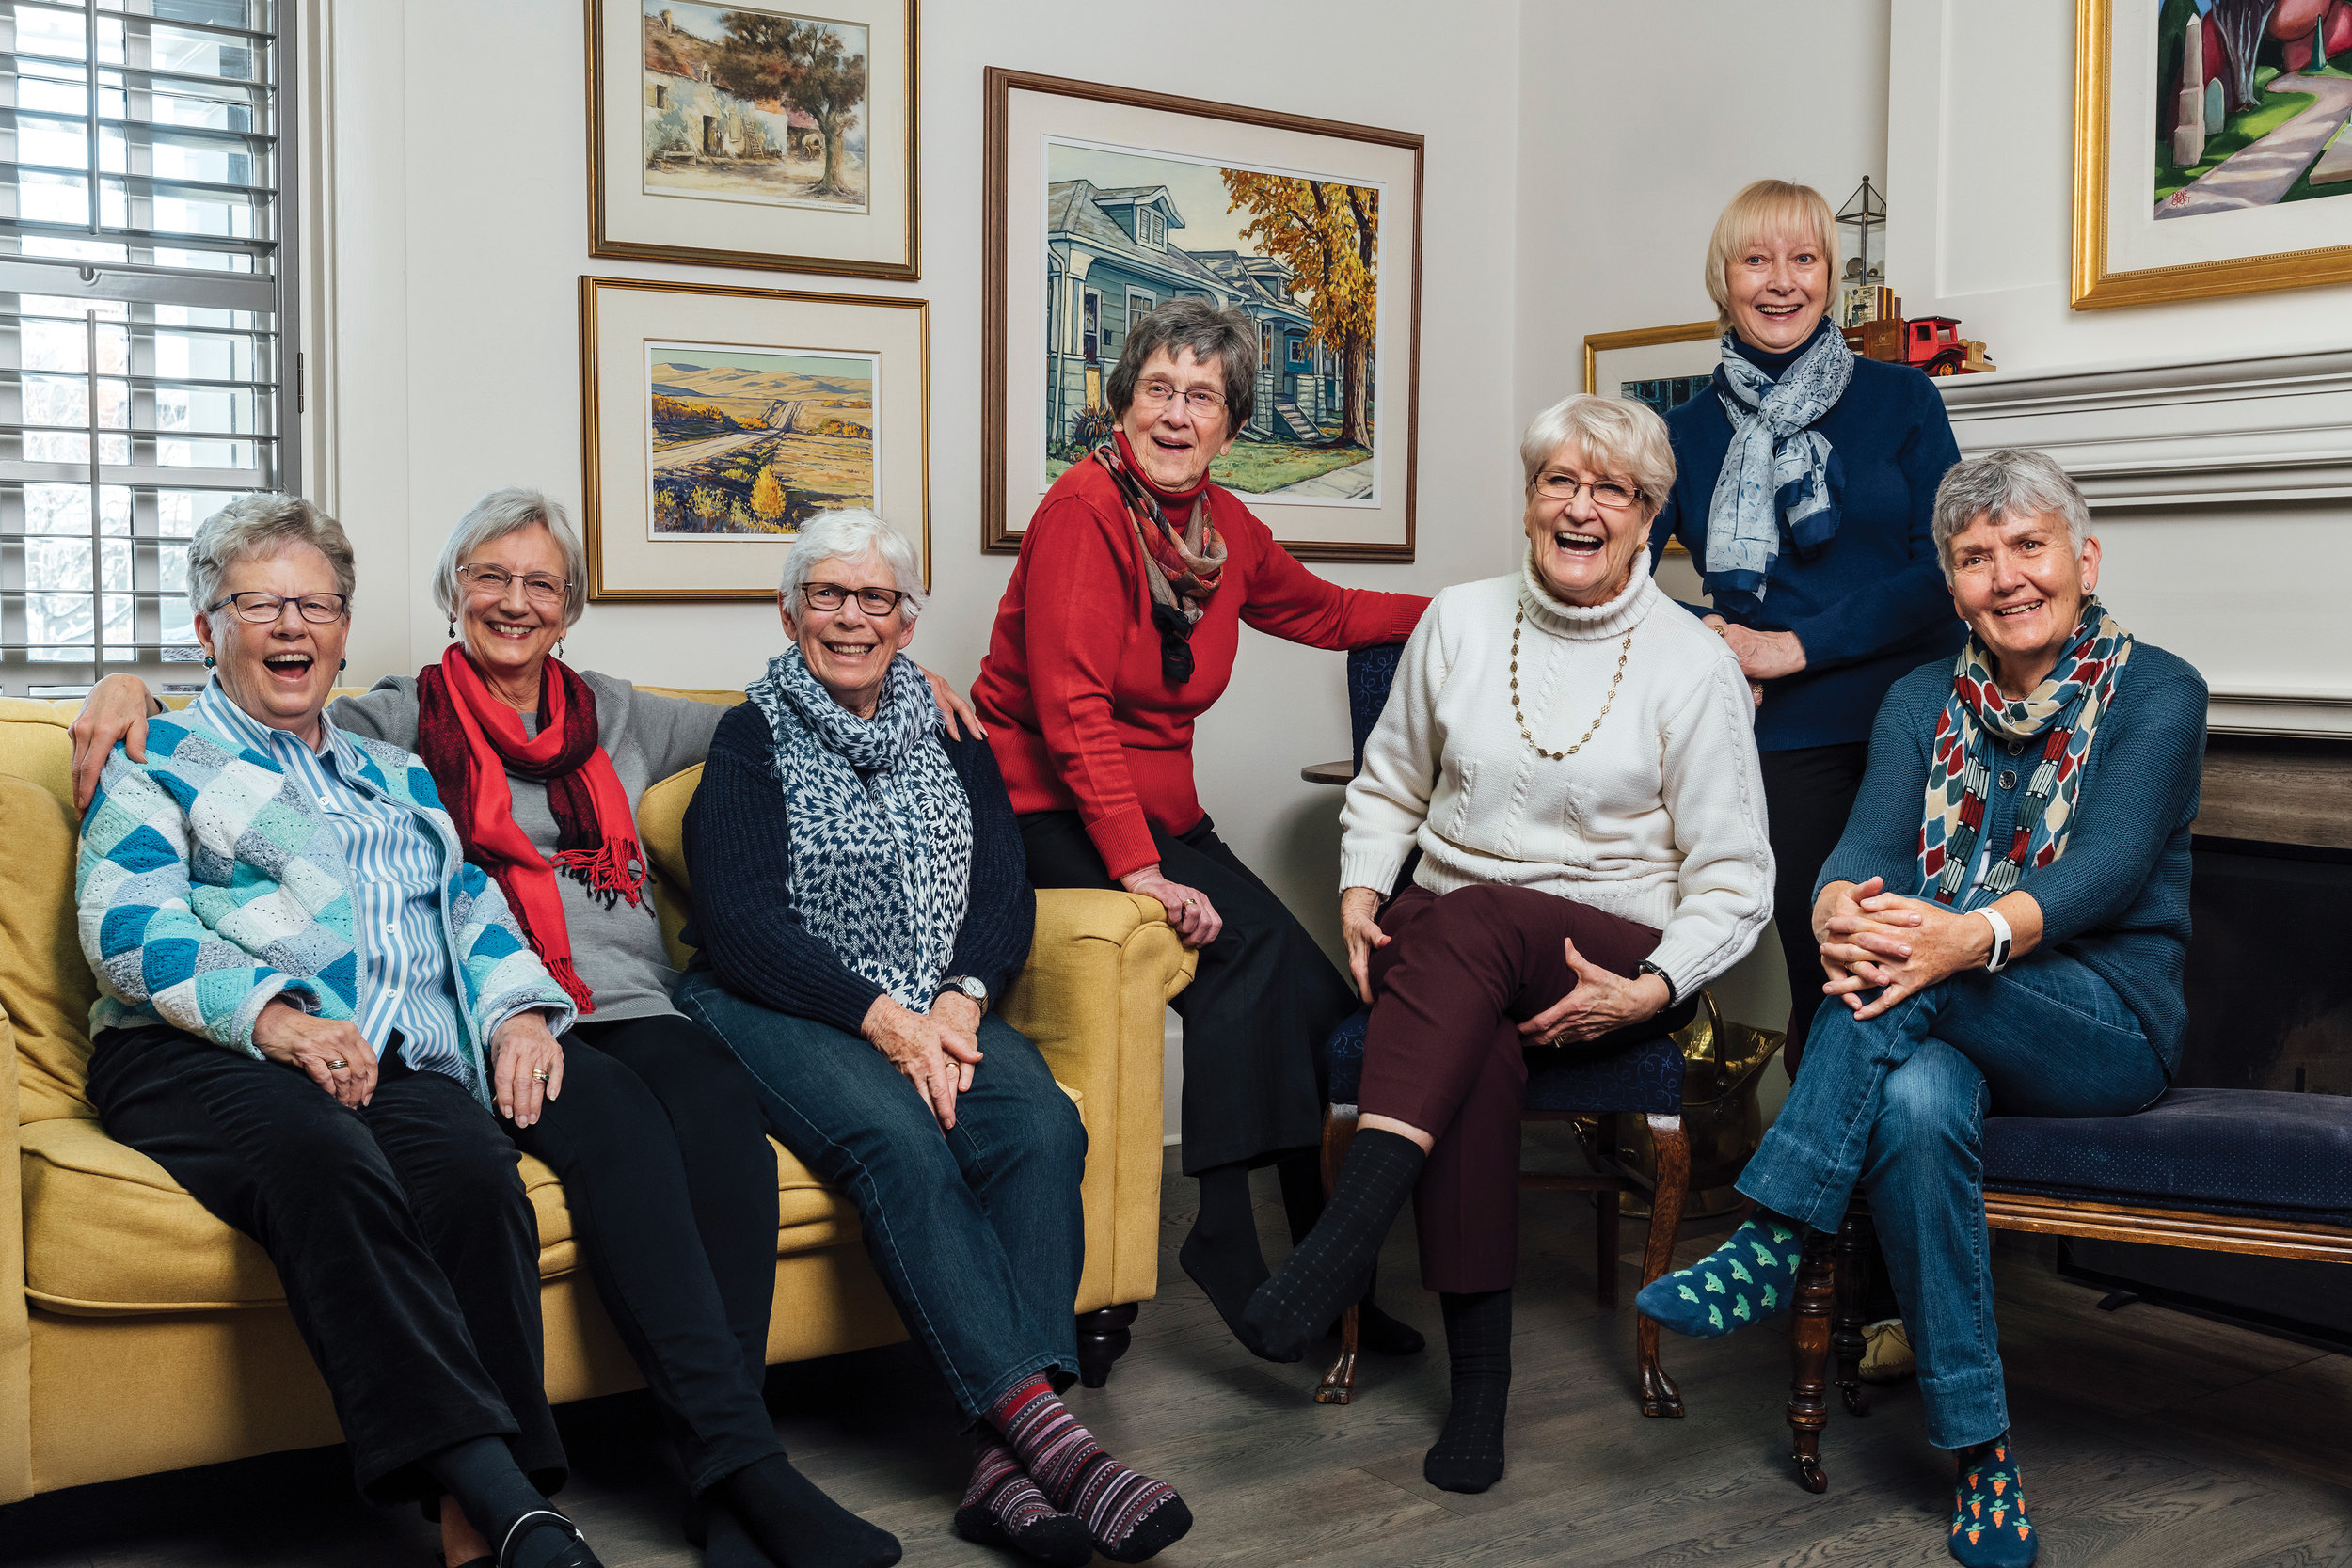 The Memory Plus Alumni Group. From left: Sue Singleton, Marilee Jasper, Diane Poole, Meta Wieser, Bev Will, Norma Whitney and Annette Koelwyn. Photo by Bryce Meyer Photography.